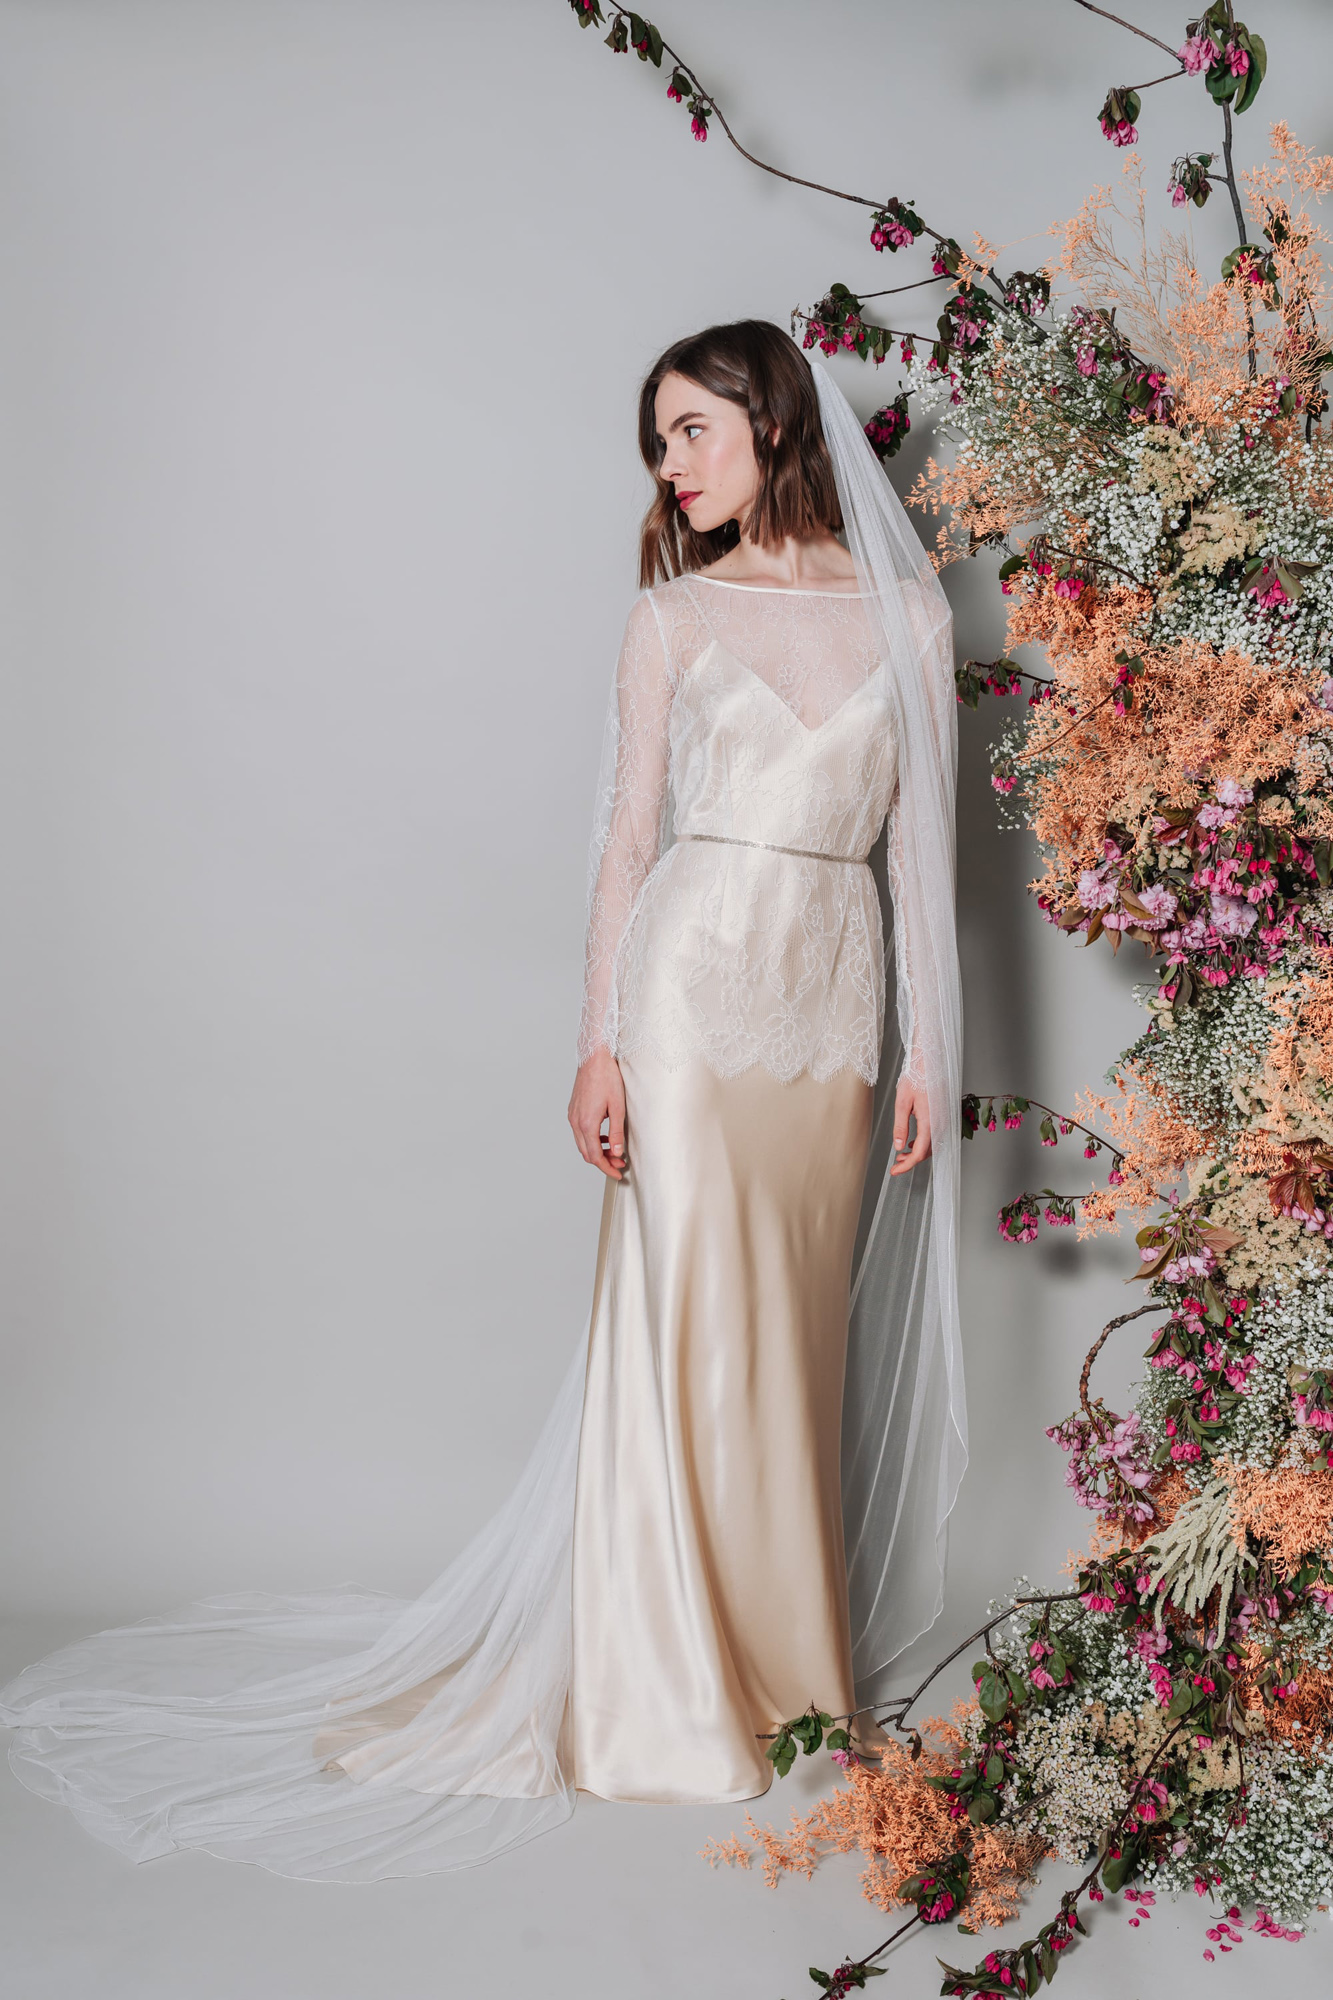 Kate-Beaumont-Sheffield-Picot-Edge-Silky-Tulle-Ethereal-Veil-10.jpg